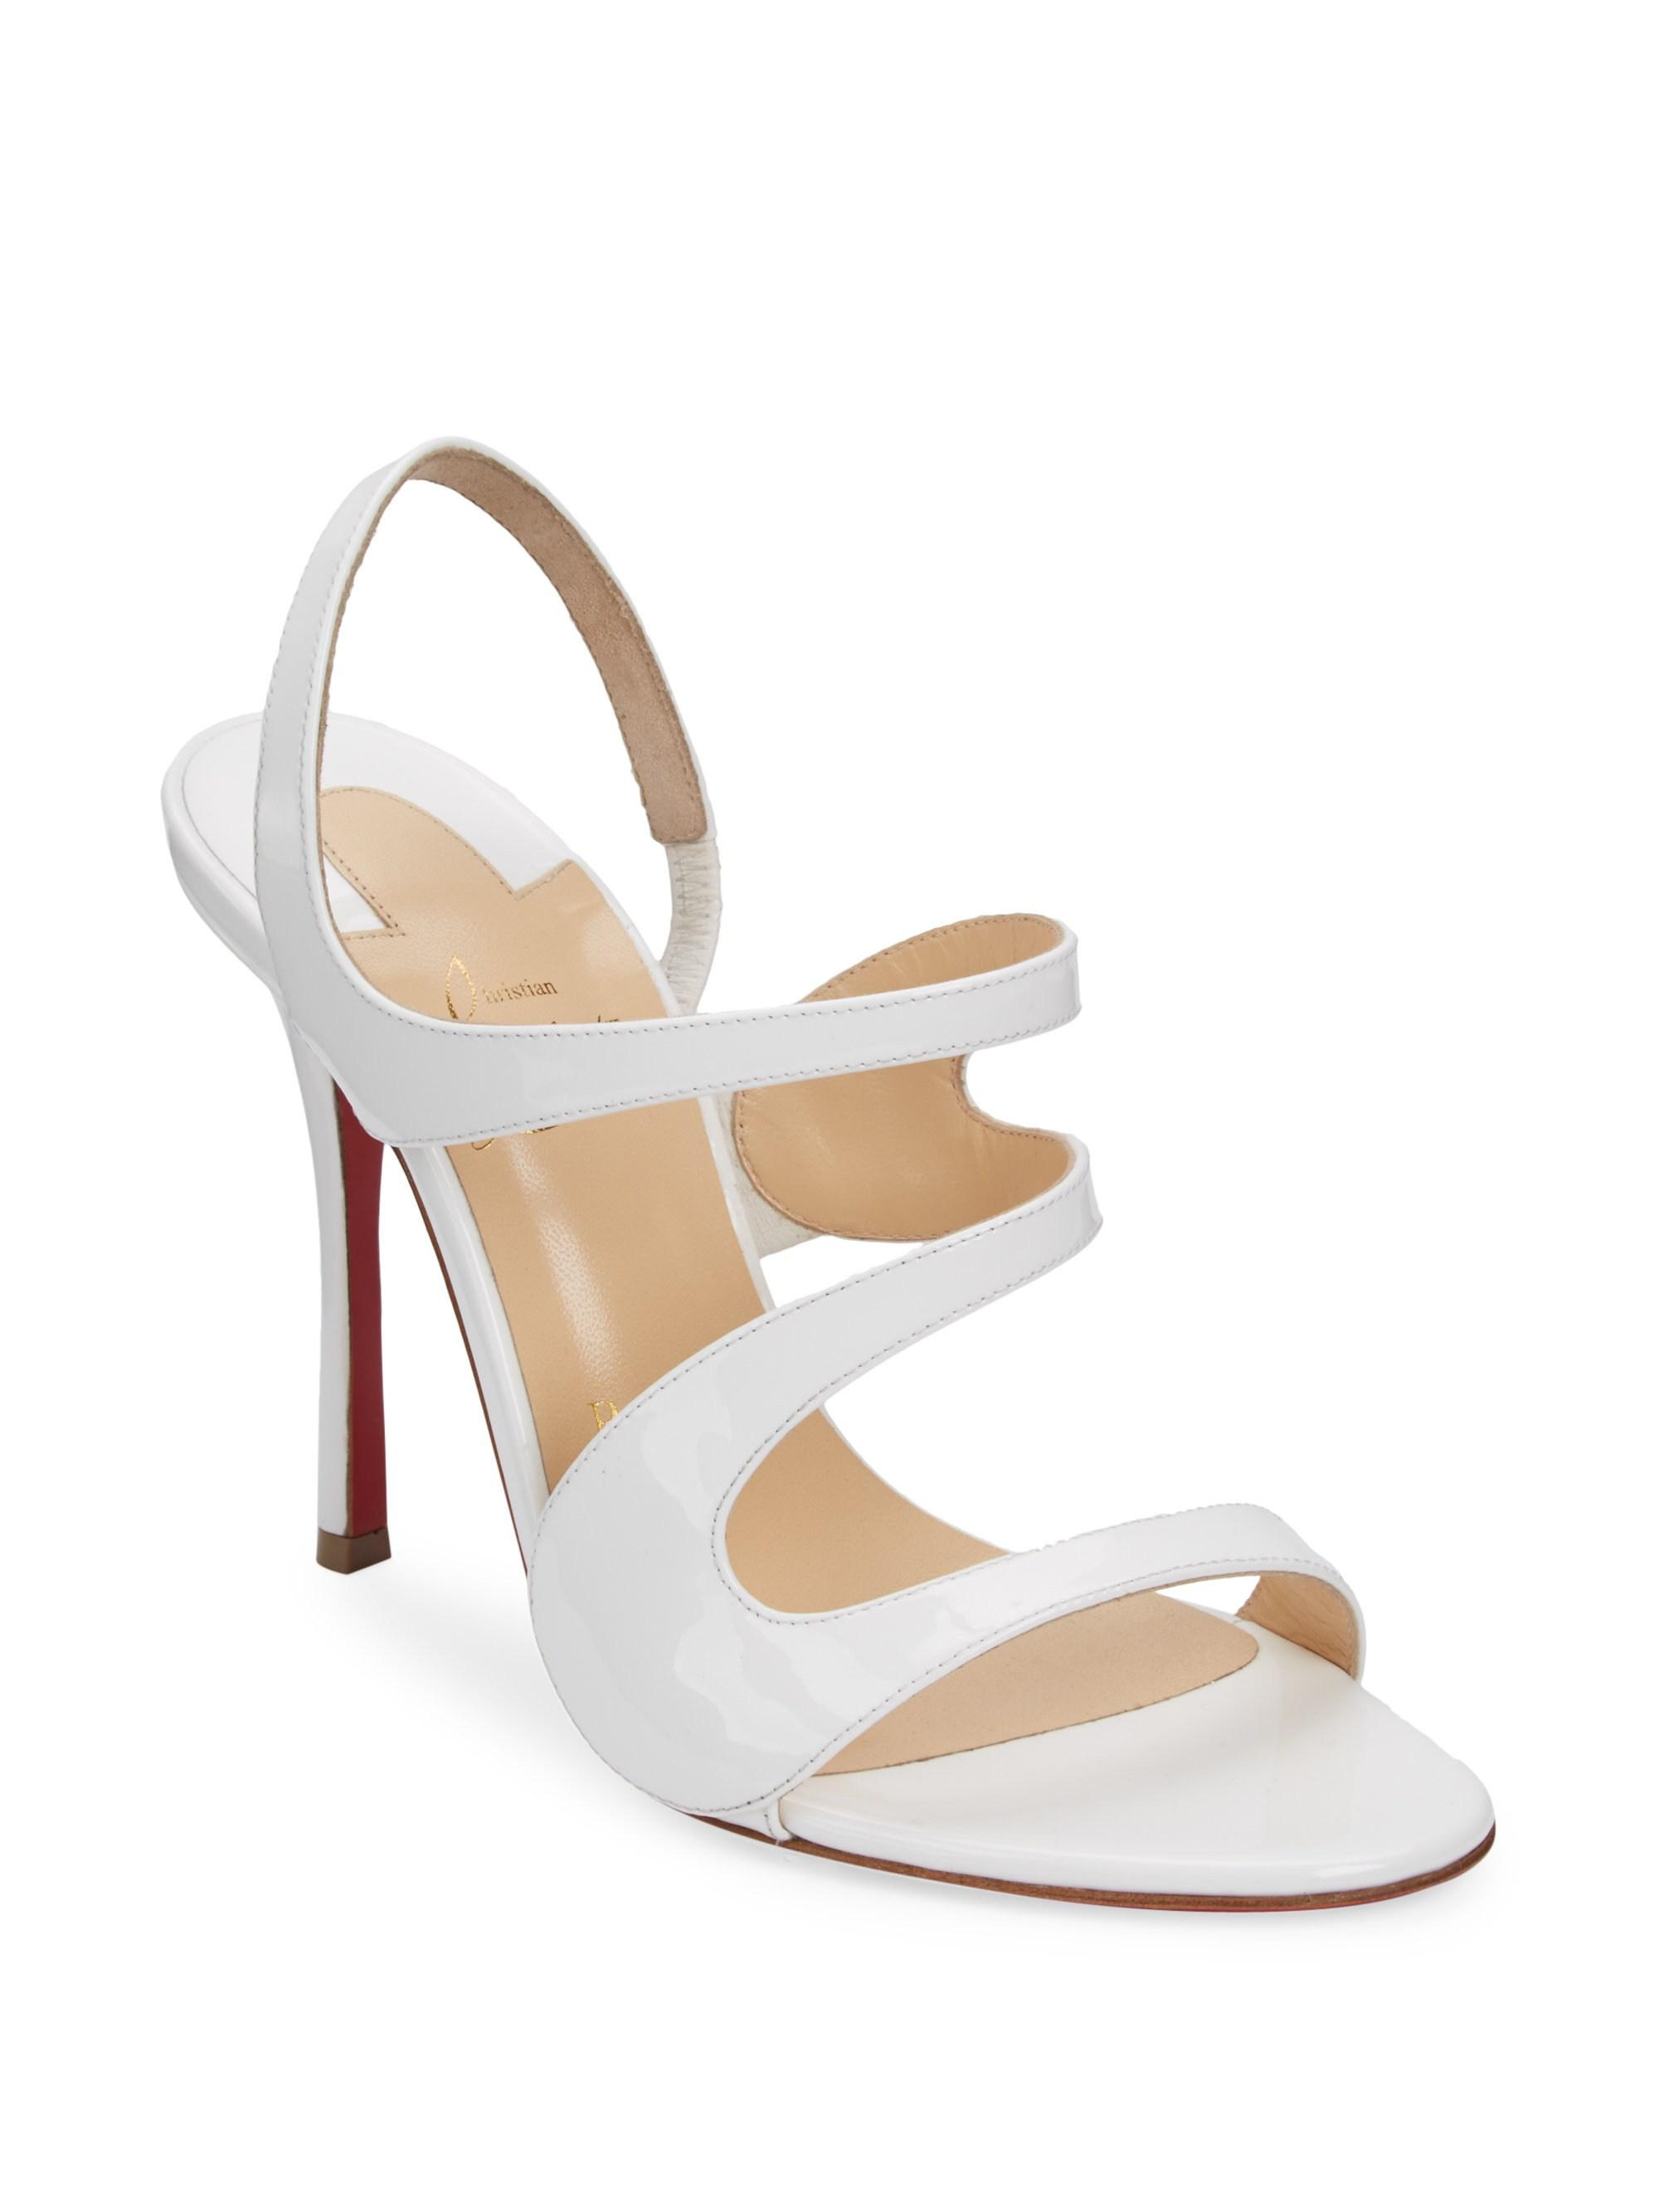 a0dec2cce601 Christian Louboutin Vavazou 100 Leather Sandals in White - Lyst